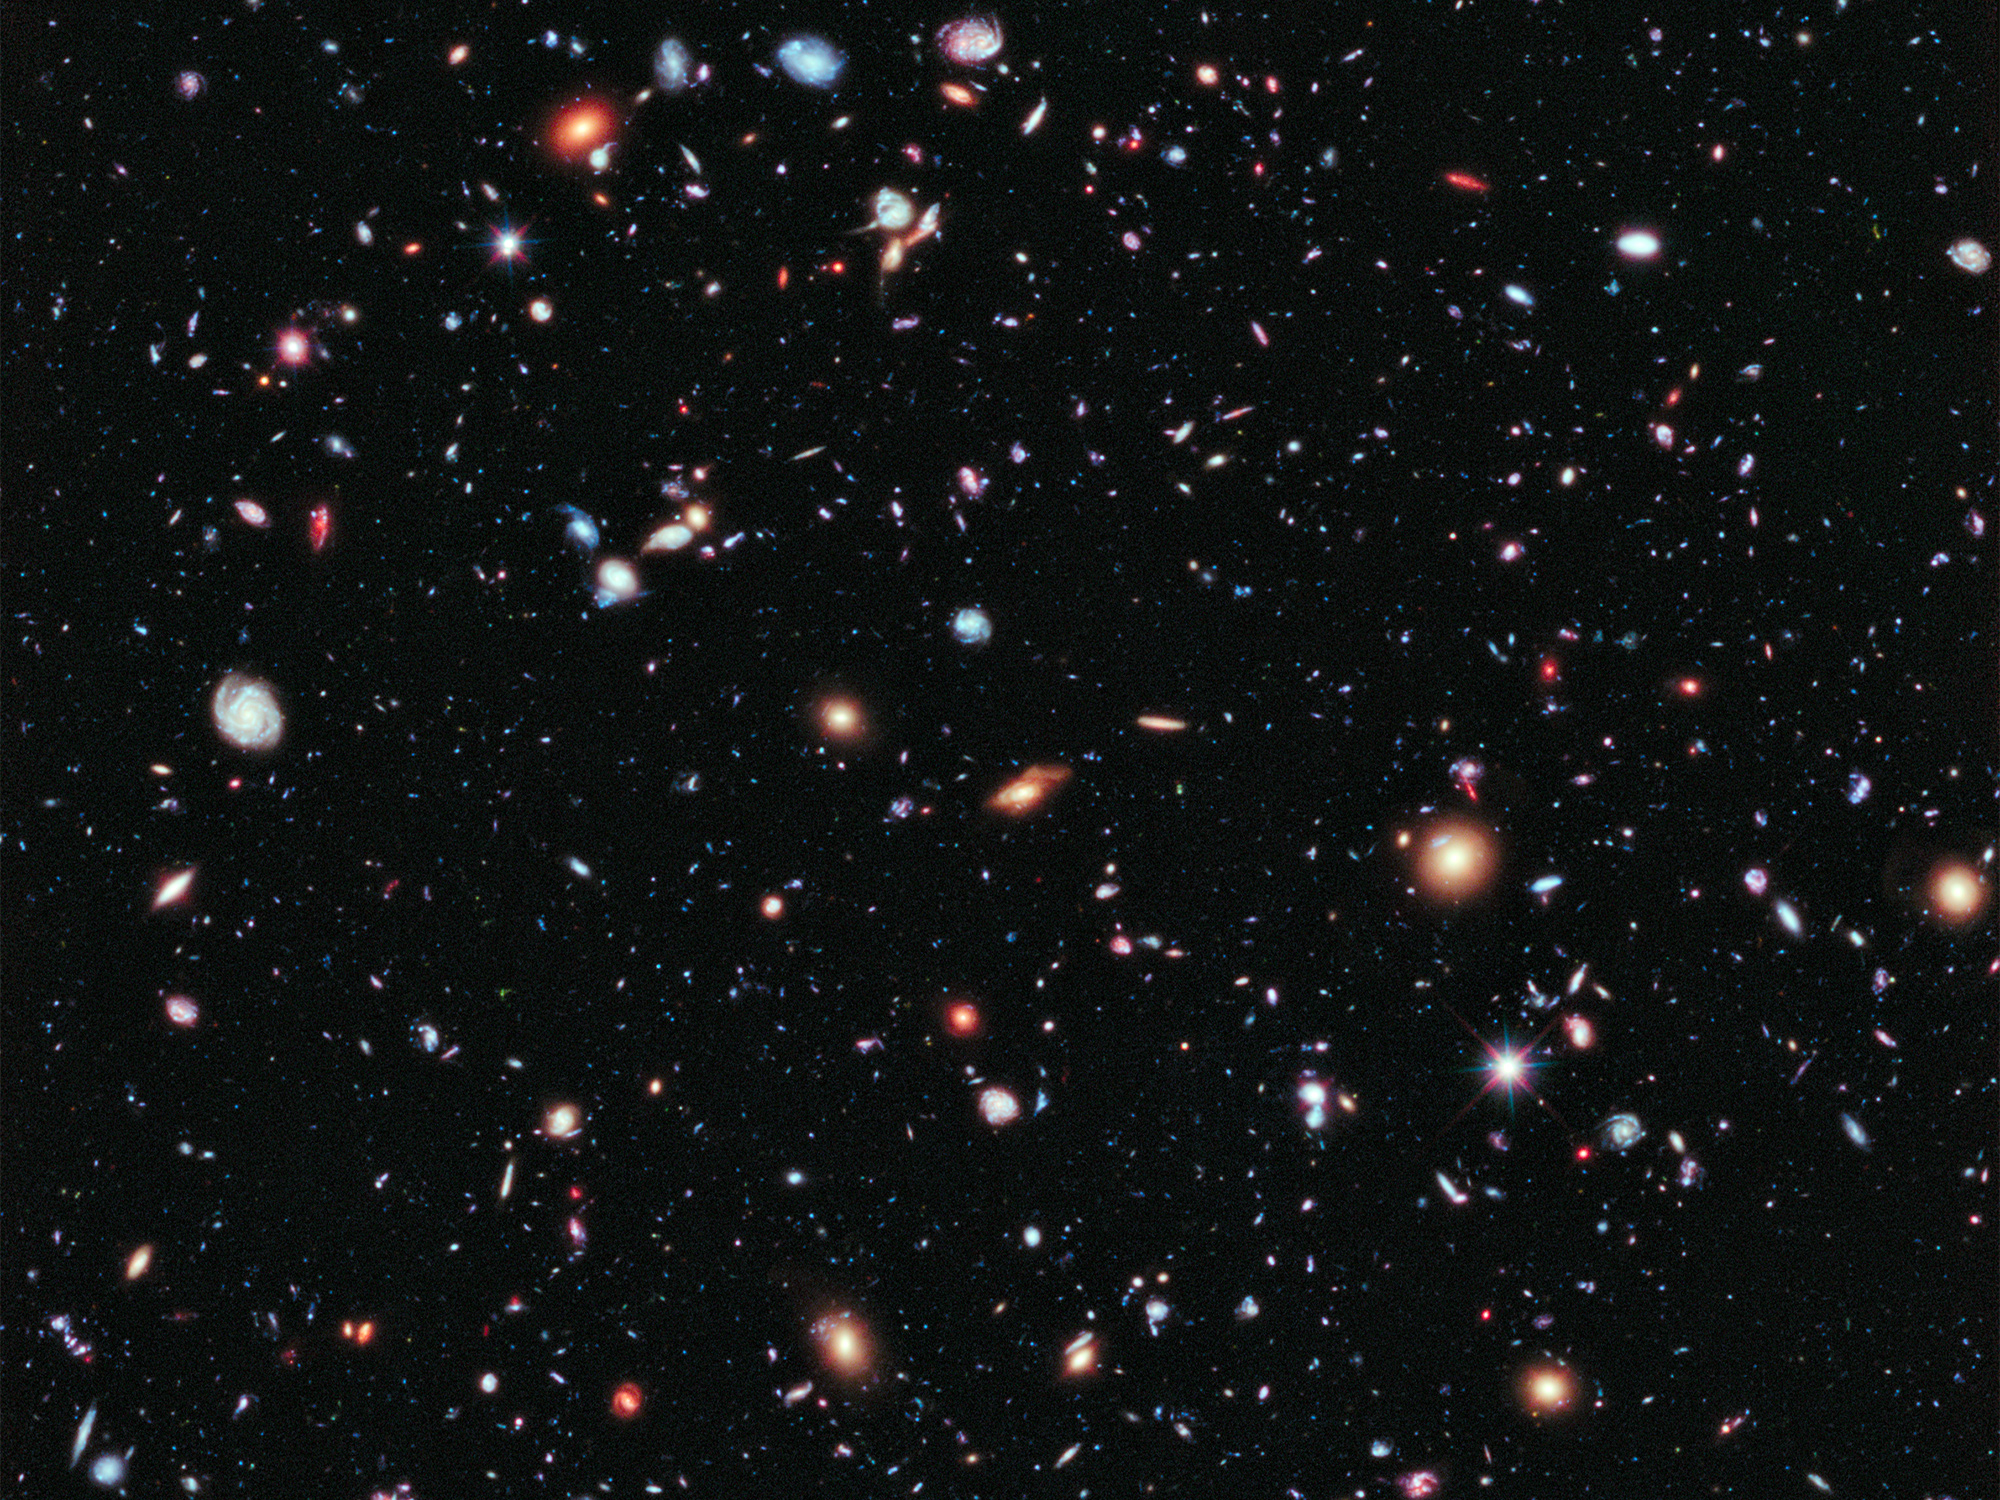 The Hubble Ultra-Deep Field image of galaxies in space.